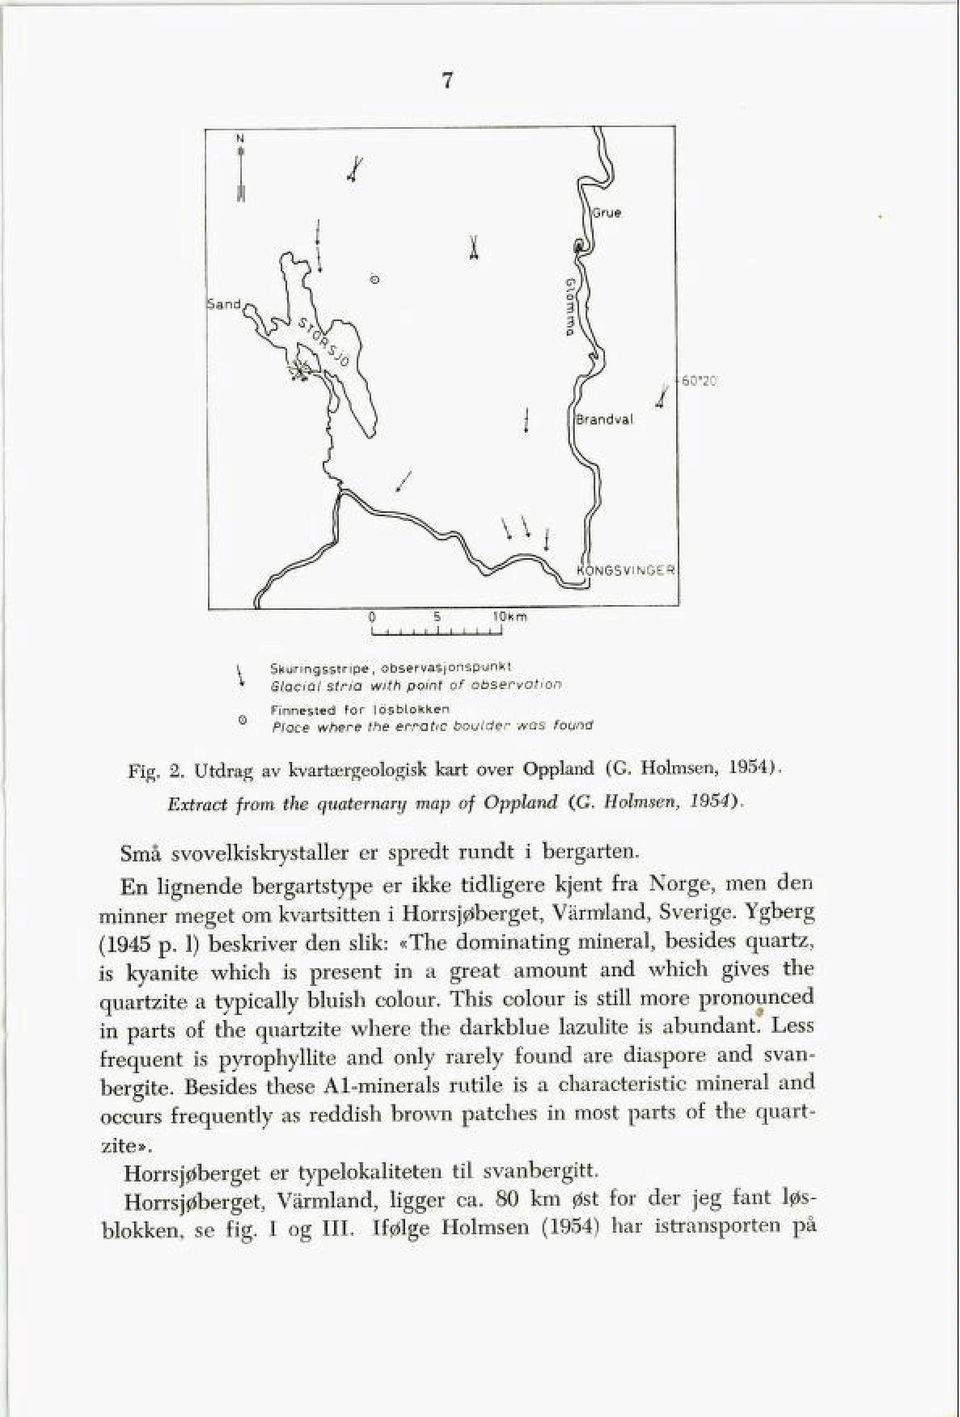 Extract from the quaternary map of Oppland (G. Holmsen, 1954).